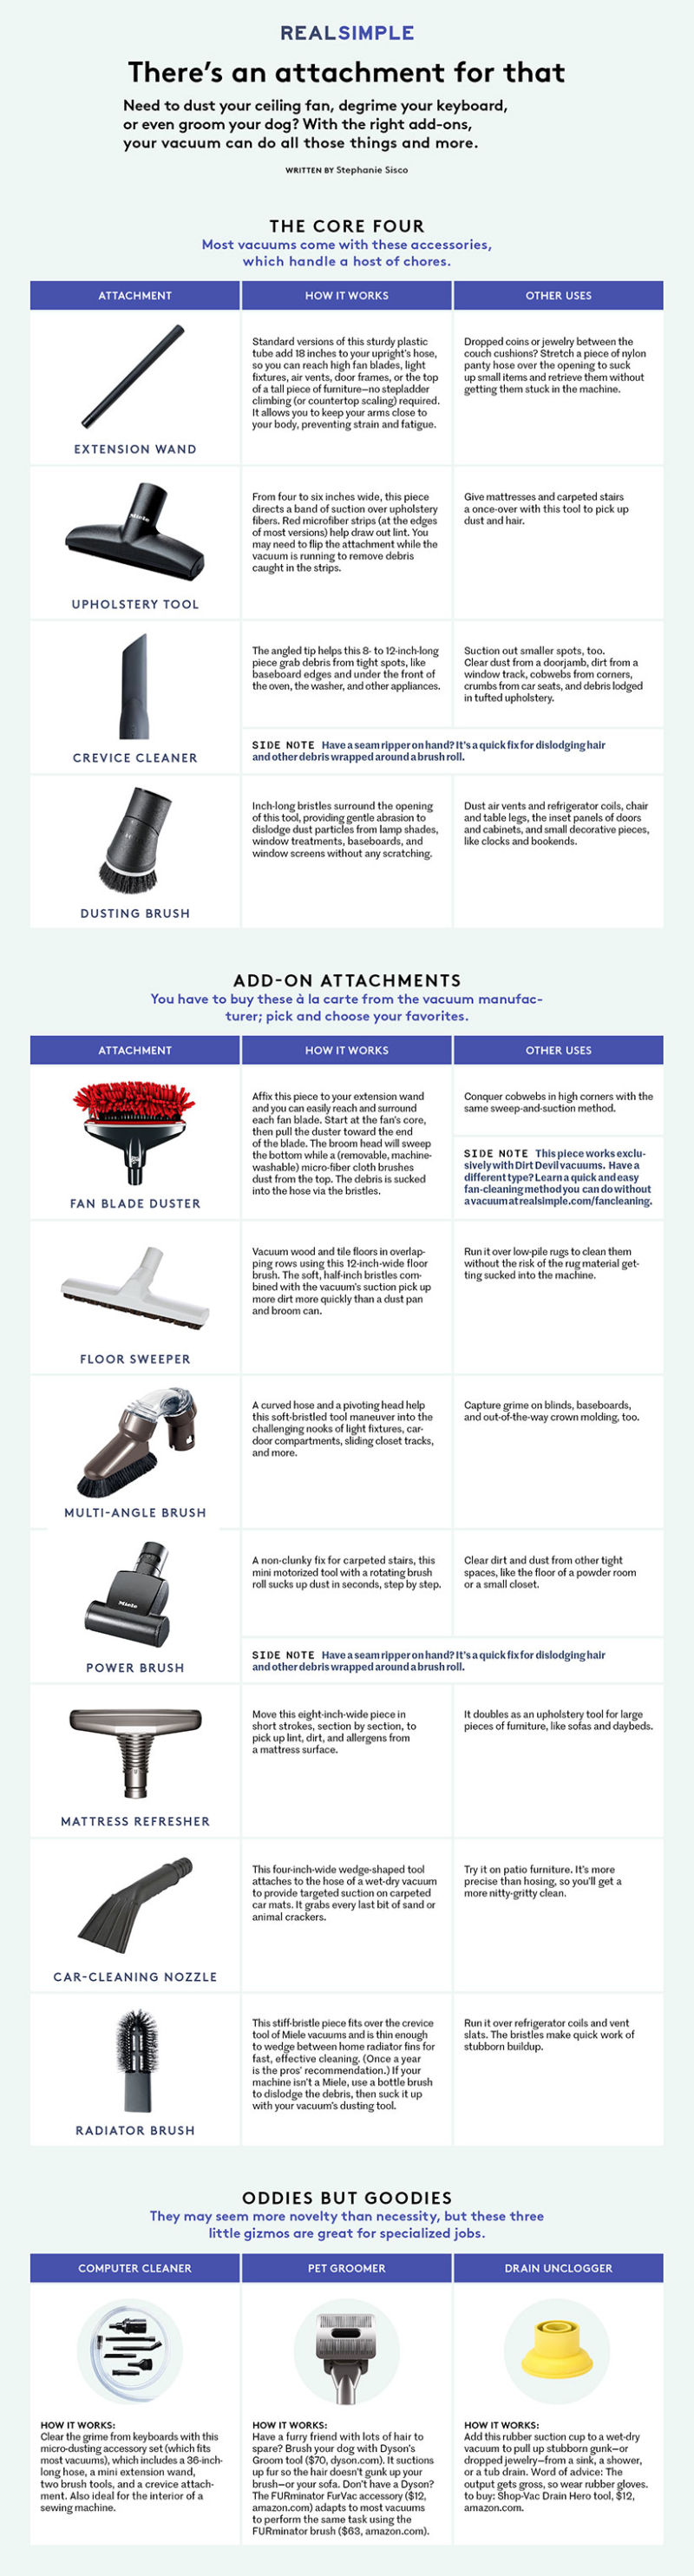 This chart explains every use for every vacuum cleaner attachment